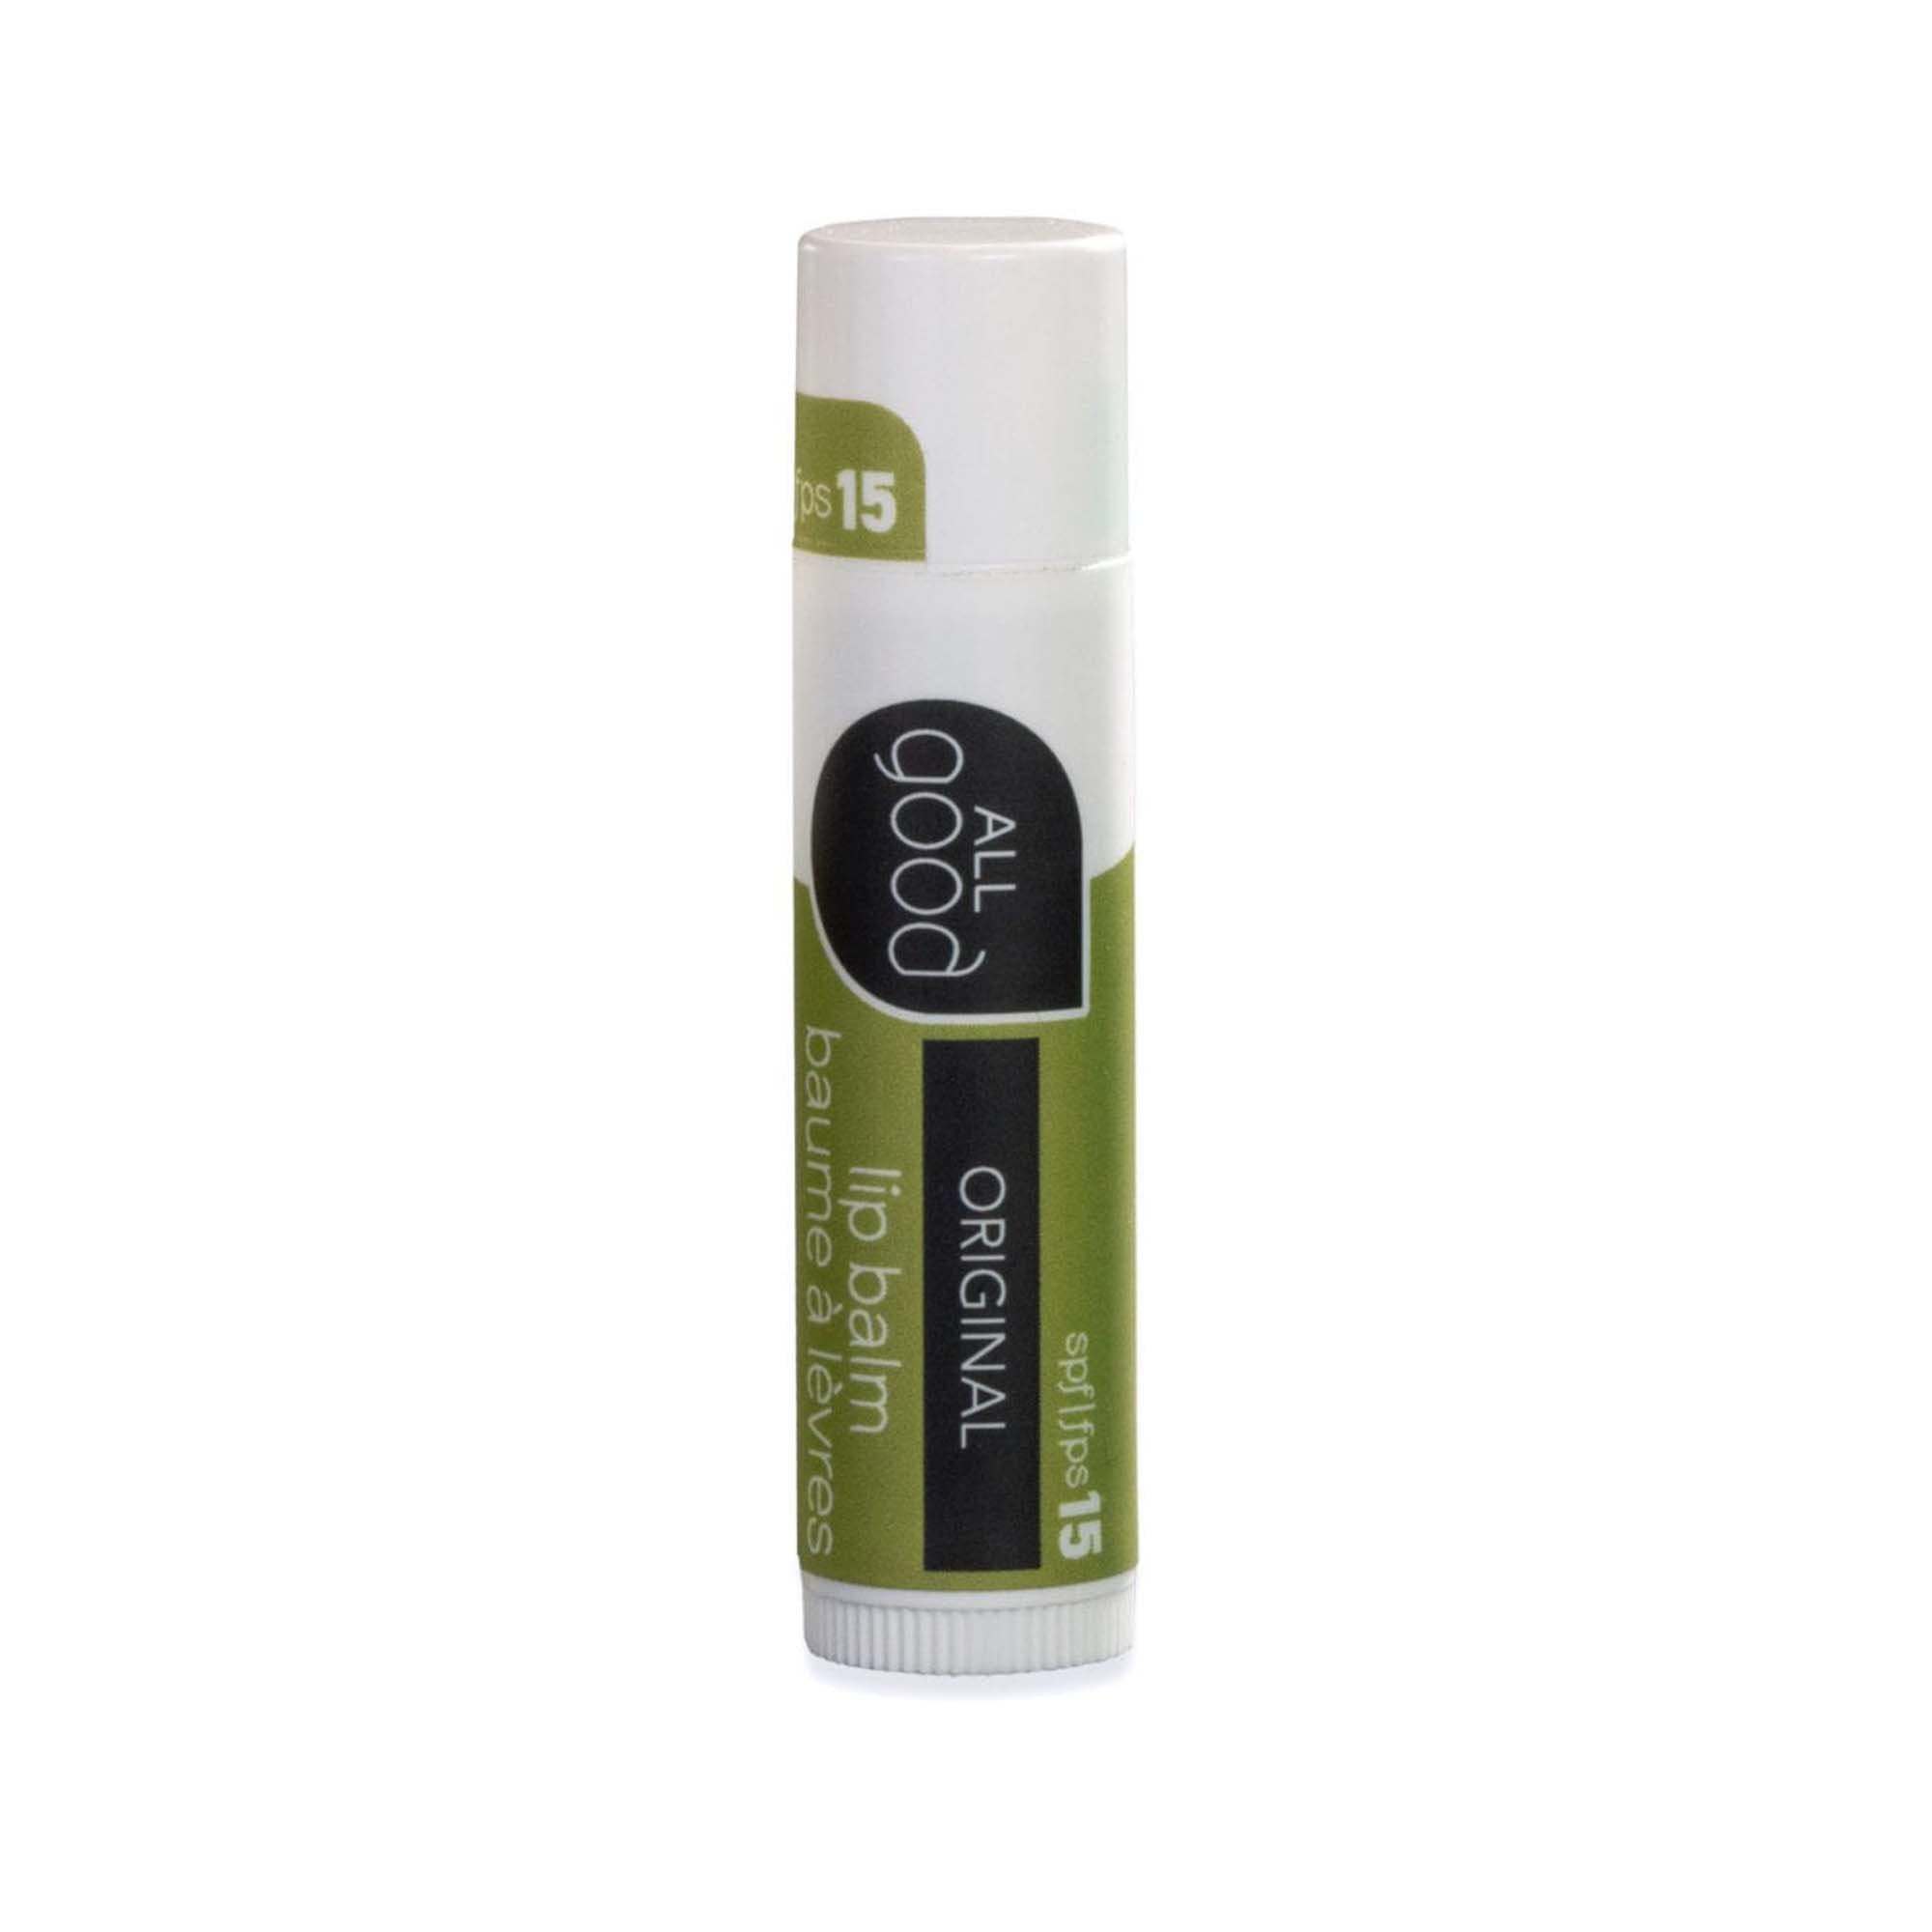 4.25g green and white tube of all good spf 15 lip balm. original flavor. white cap. white wheel on bottom to reveal/hide lib balm in tube